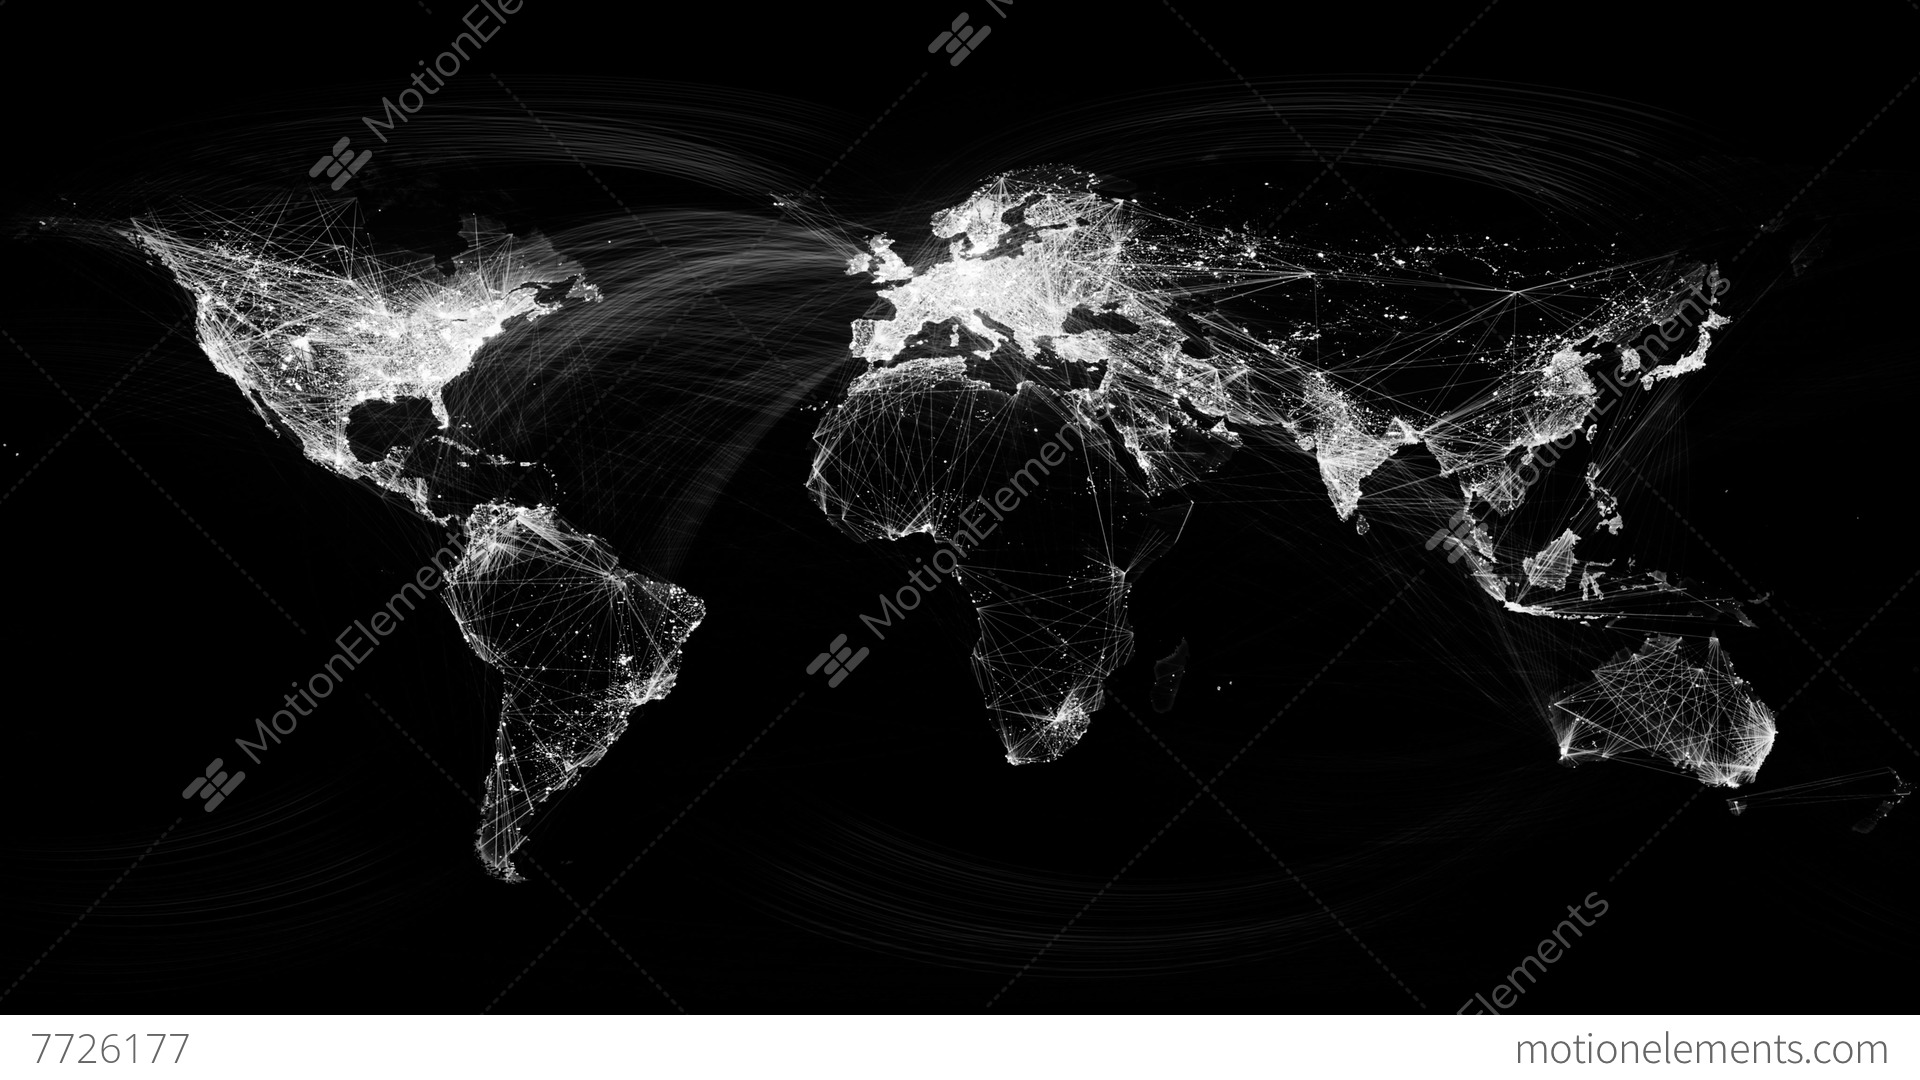 Network lines lighting up world map 4k black and white version network lines lighting up world map 4k black and white stock video gumiabroncs Choice Image